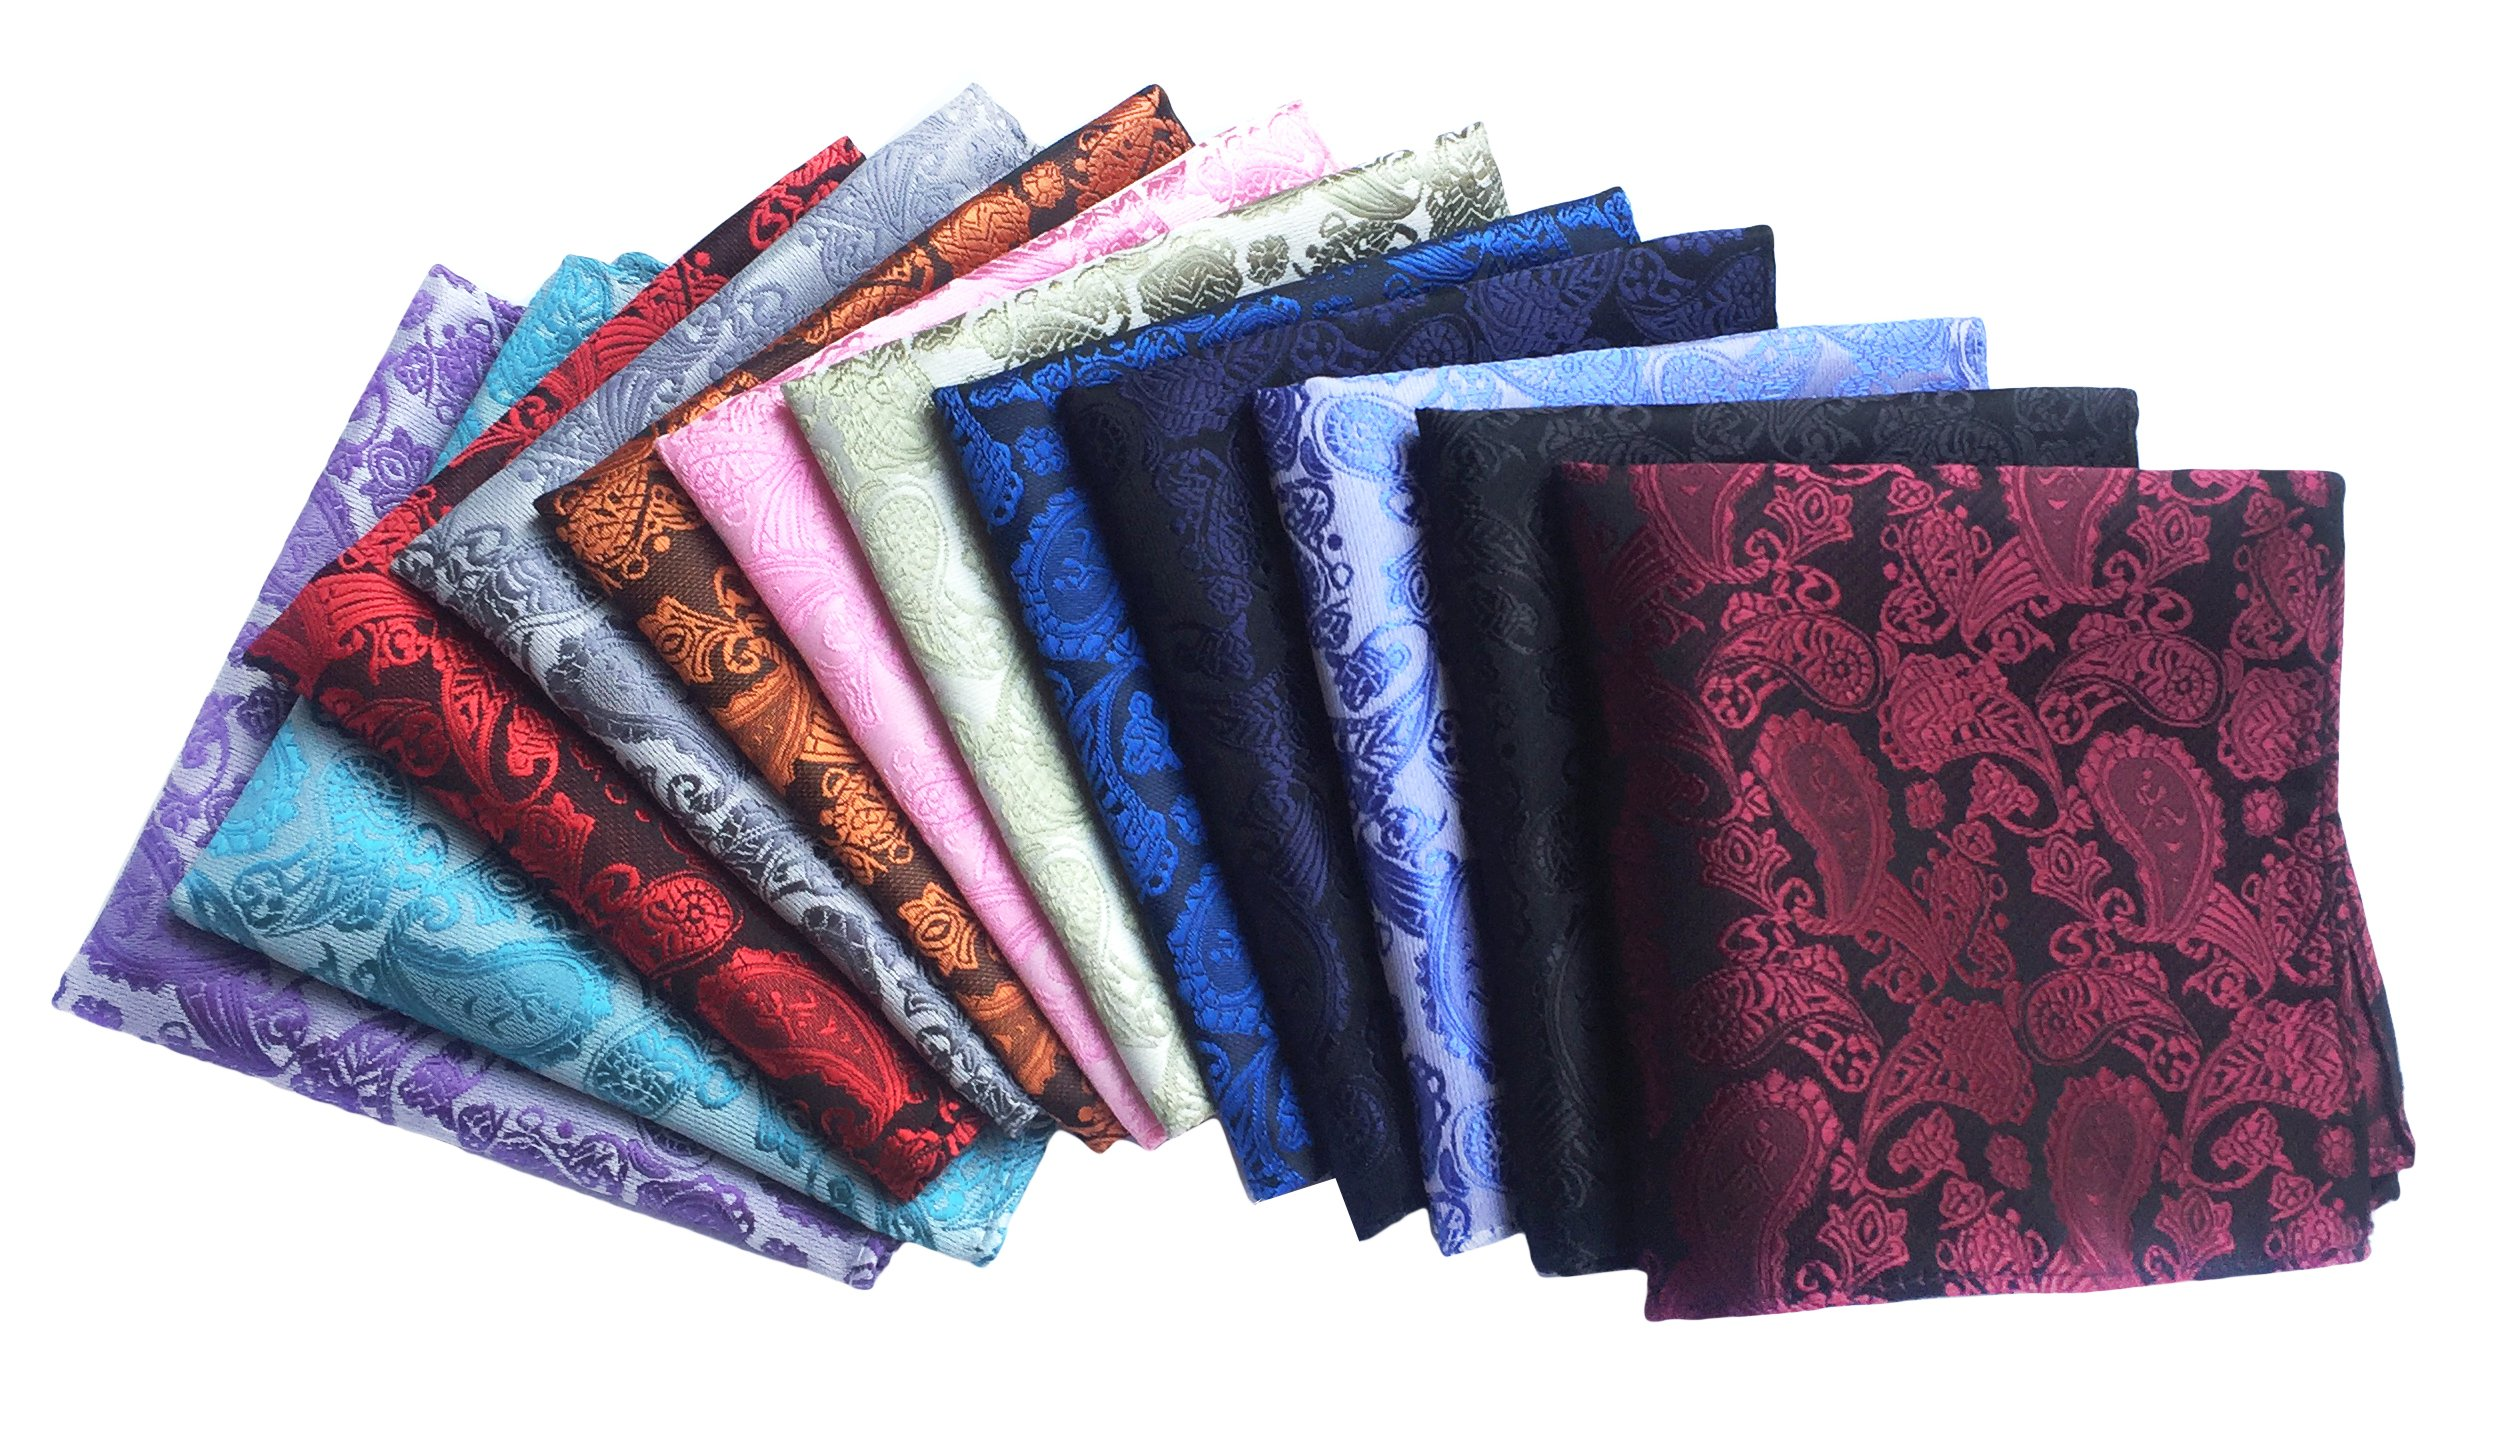 MENDENG Men's 12 Pack Handkerchief Paisley Pocket Square Wedding Party Hanky